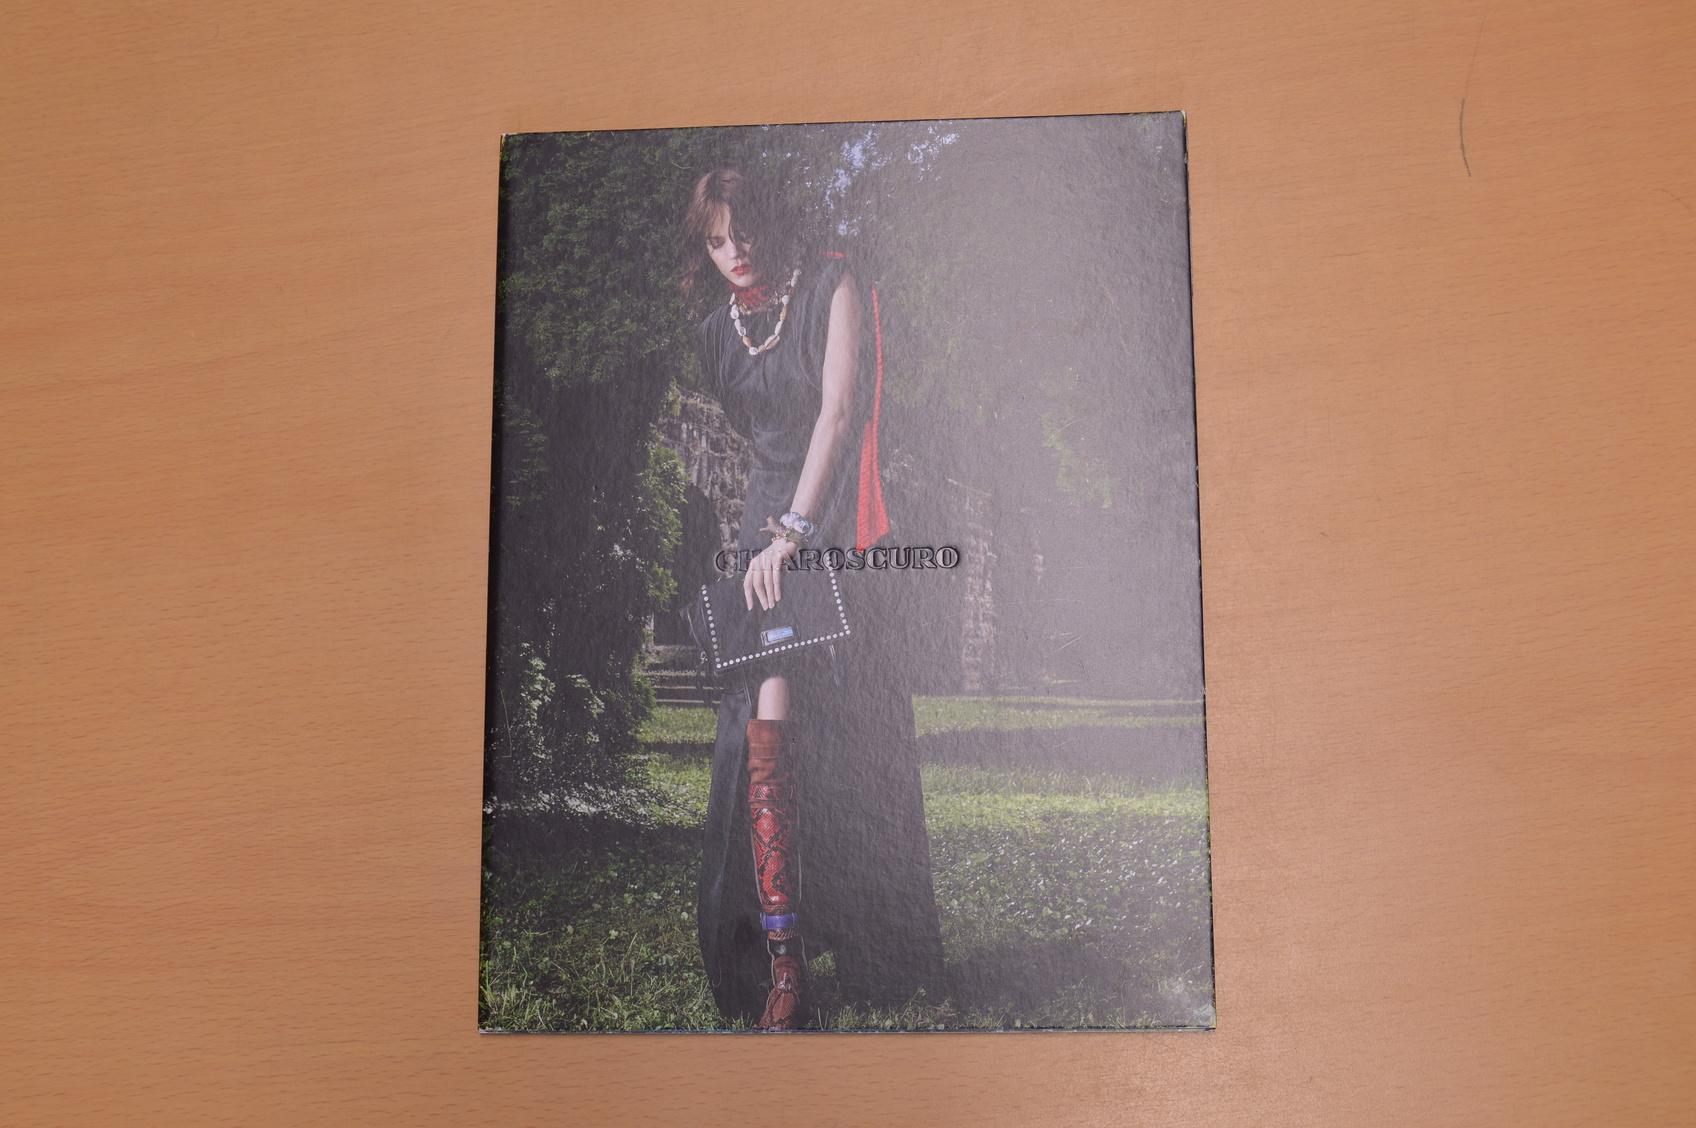 Prada Catalogue: Viewfinder, Auteur, Chiaroscuro, Dialogue, Persona, Piece de Chambre, Denouement Prada Very Good Softcover Prada: 2017. 7 x Prada Catalogues. Bound in pictoral hardcover with softcover catalogue inside incl. large poster all in very good + condition.Interna